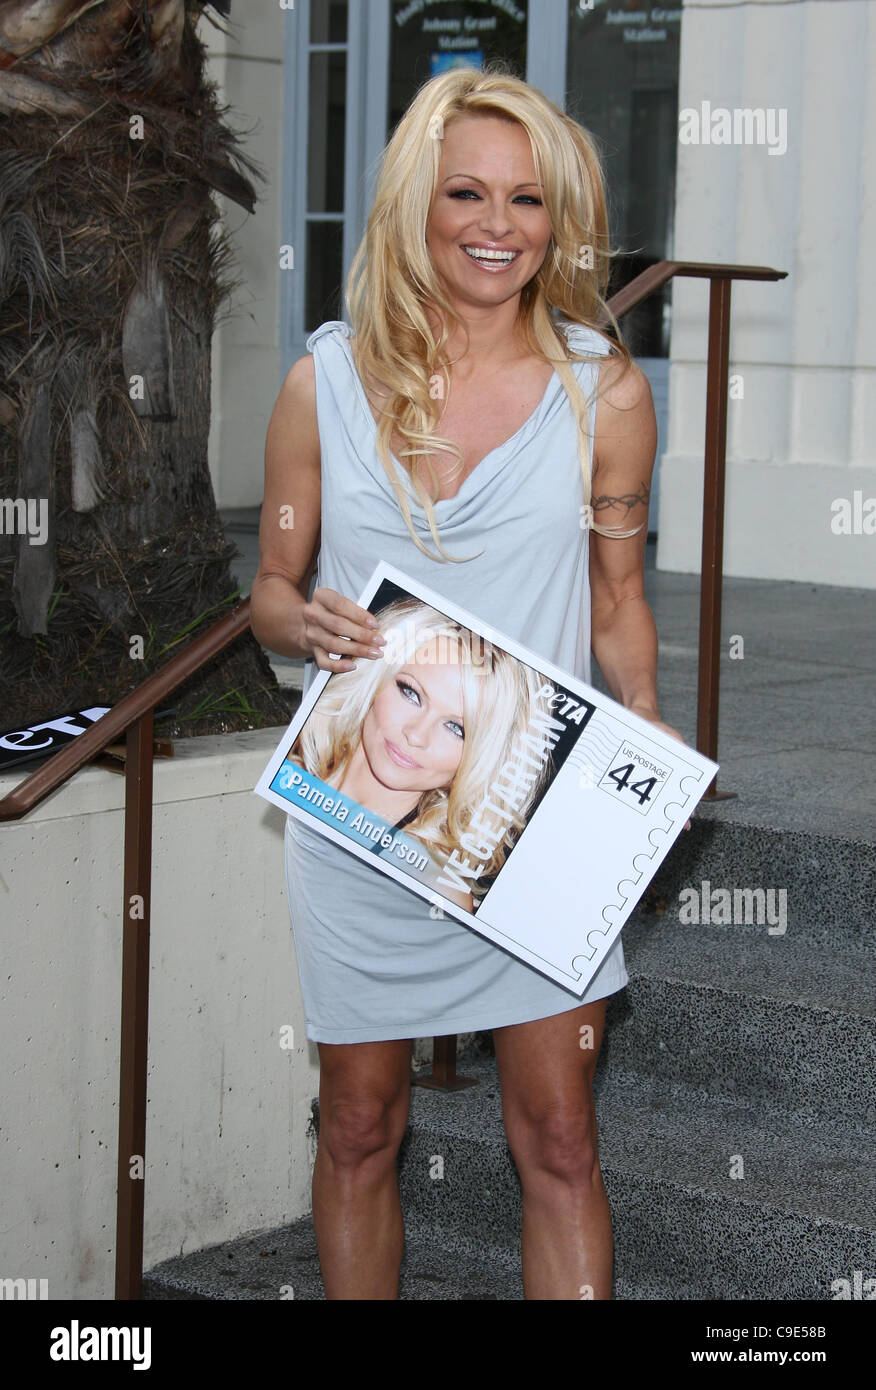 PAMELA ANDERSON PETA GOES POSTAL. VEGETARIAN ICONS POSTAGE SHEET UNVEILING. LOS ANGELES CALIFORNIA USA 29 November - Stock Image